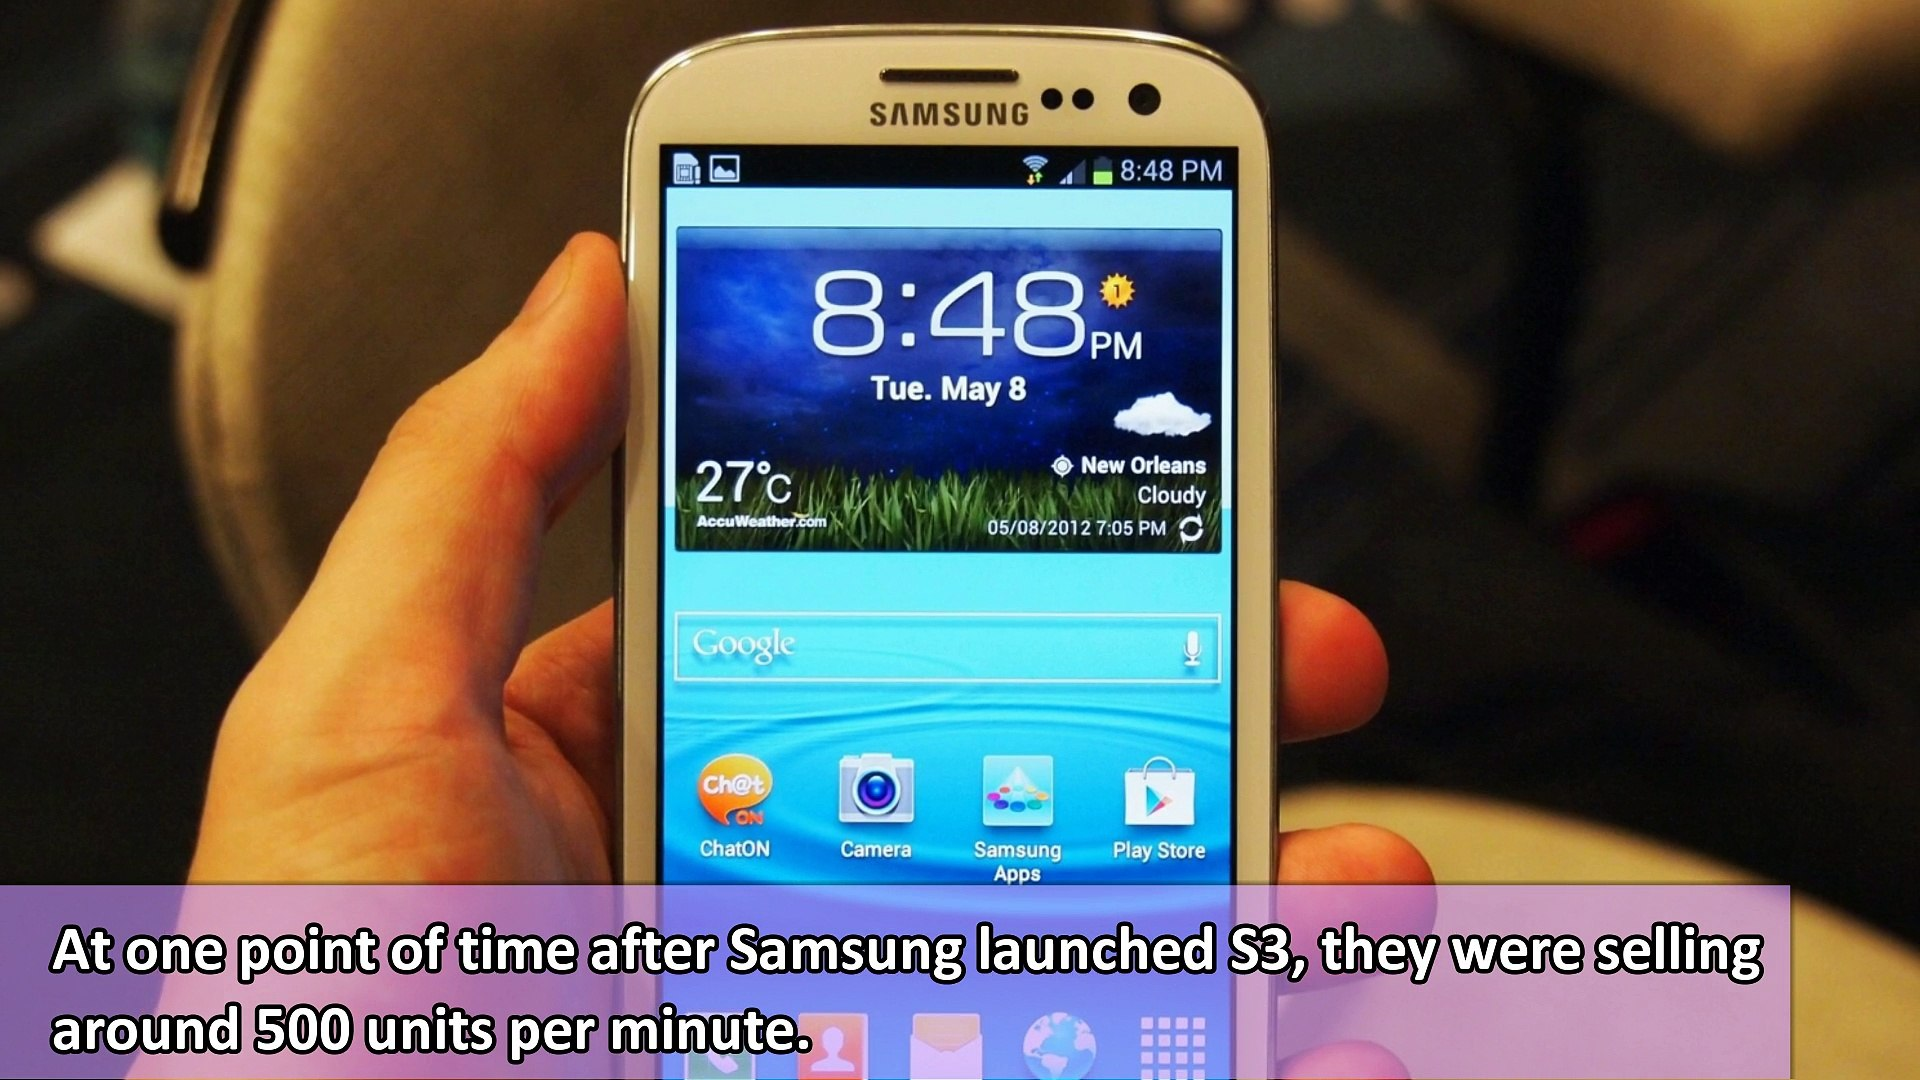 Samsung - Unknown Facts - Lesser Known Facts - Unbelievable Facts - KnowVids